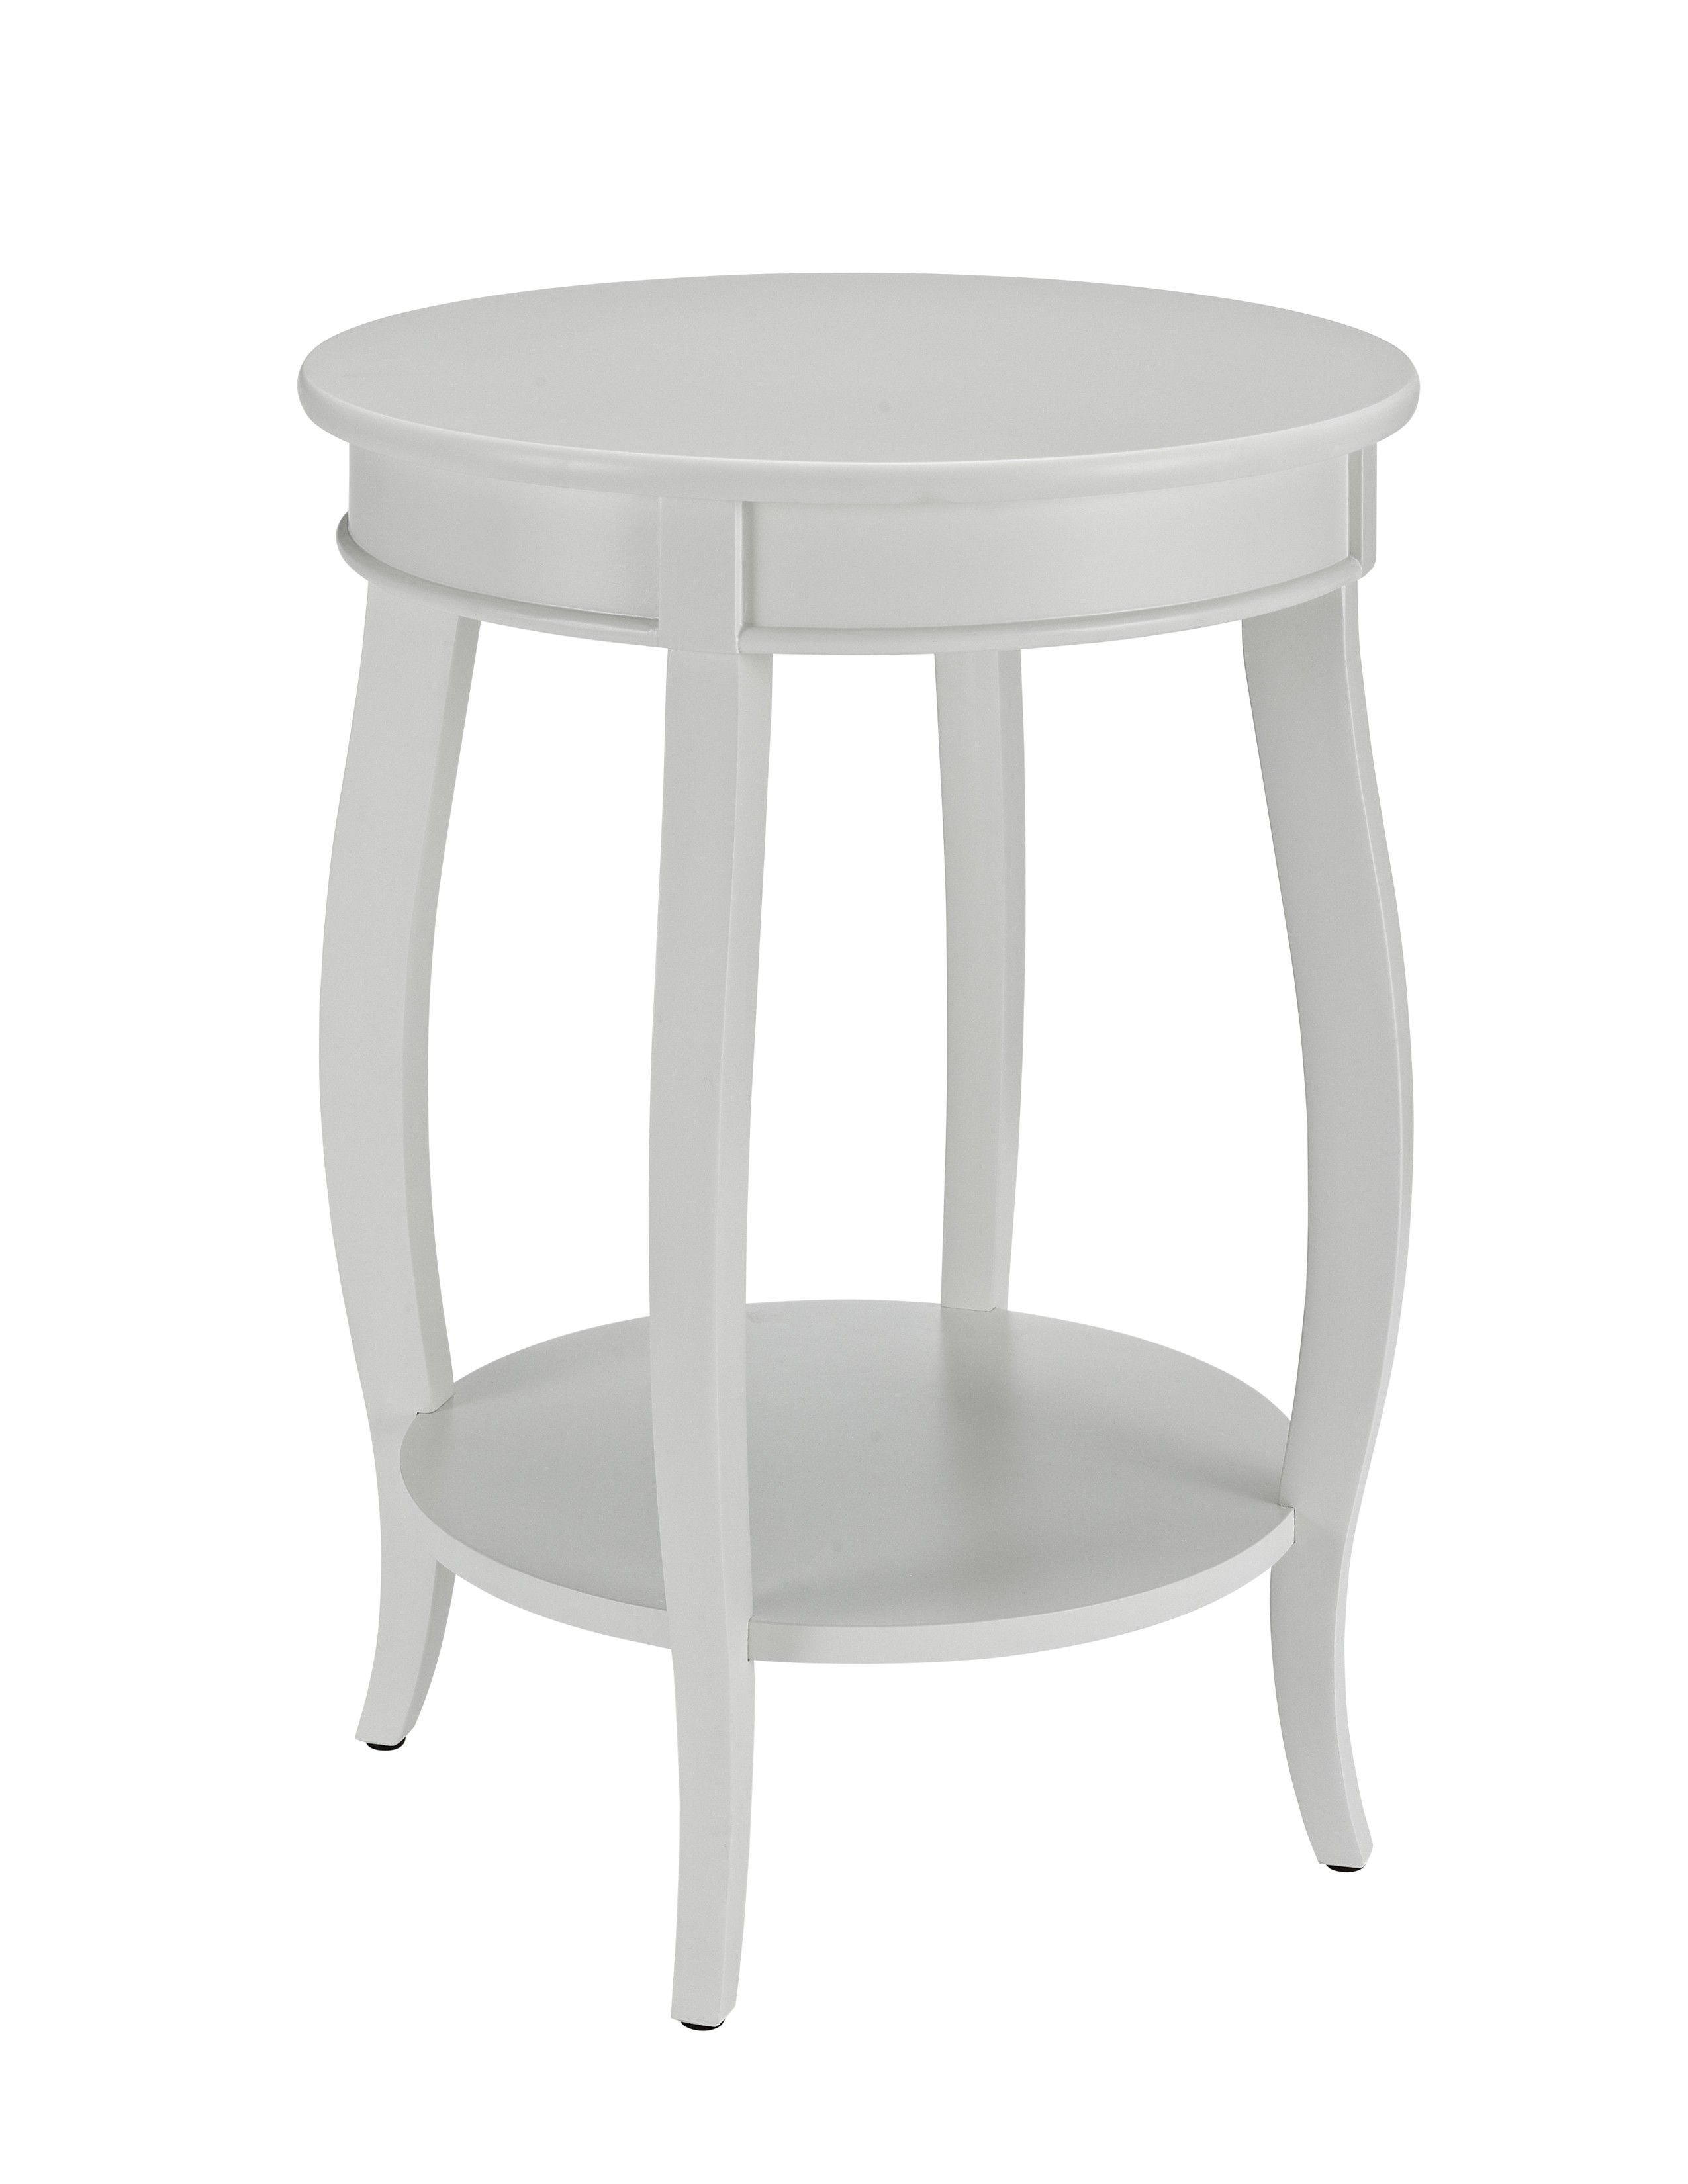 White Round Pedestal Side Table Round Side Table End Tables Side Table